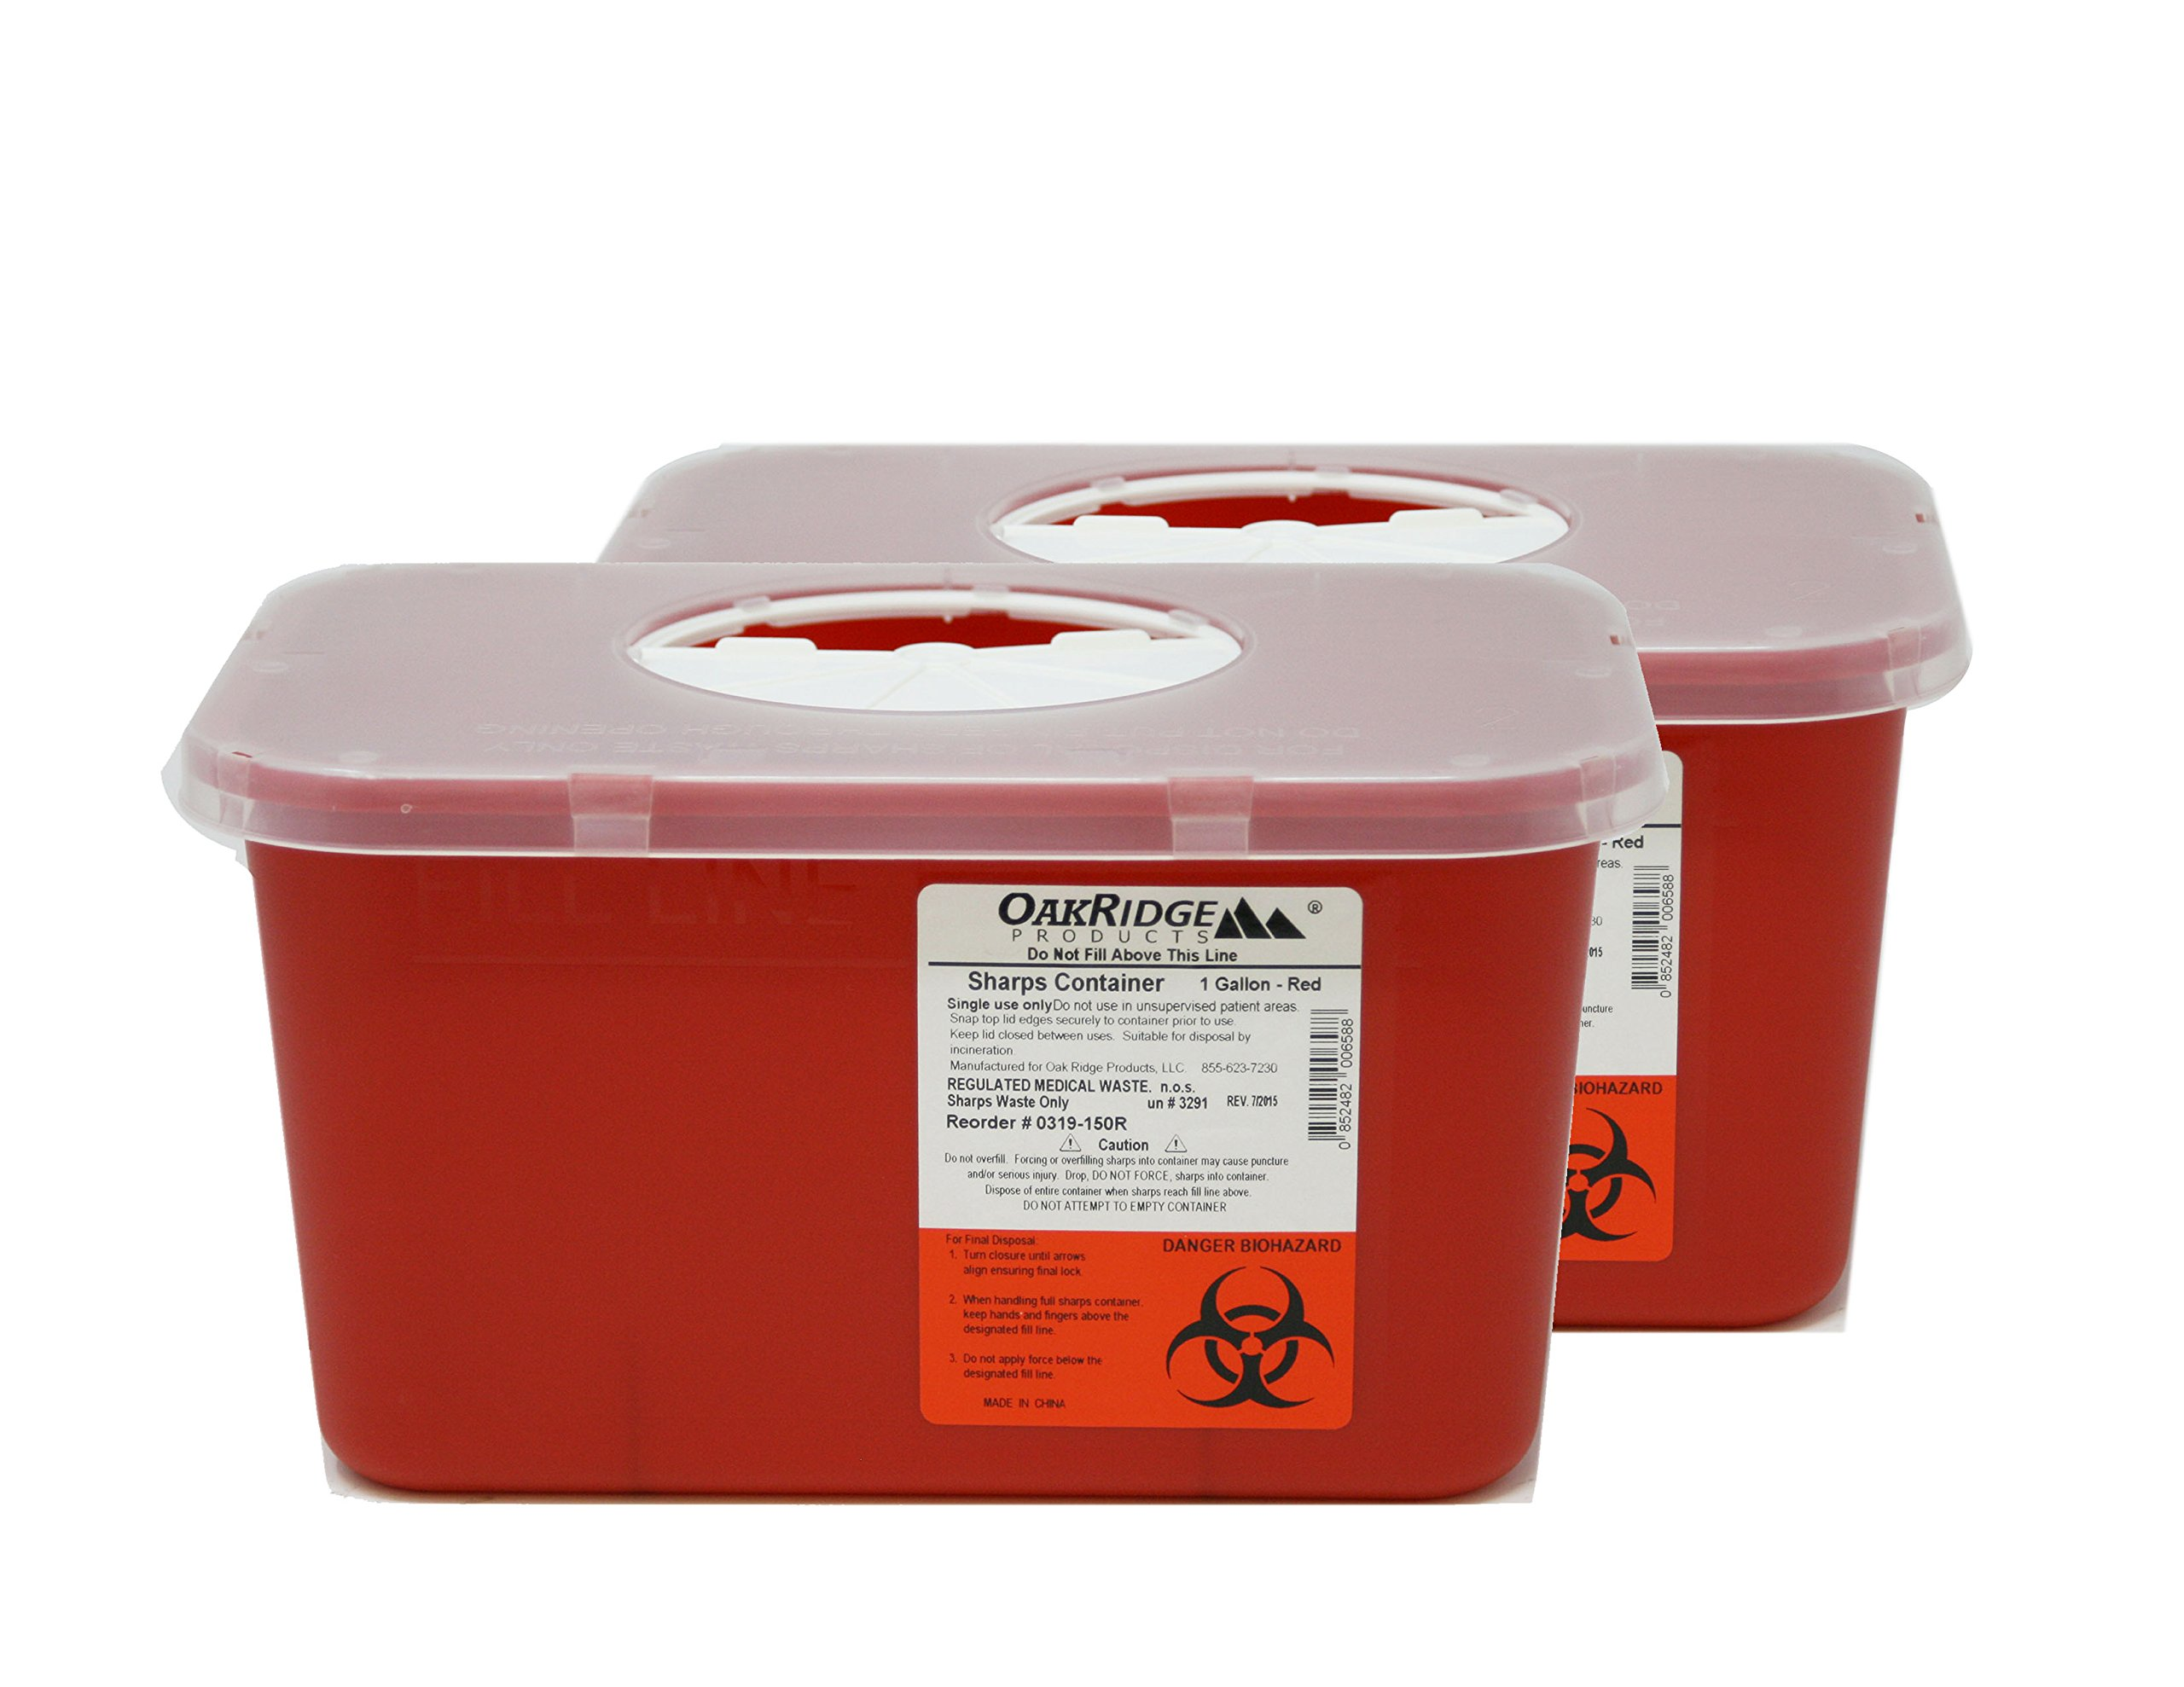 Oakridge Sharps Container - 1 Gallon (2 Pack) - Easy use Rotating lid Design by OakRidge Products